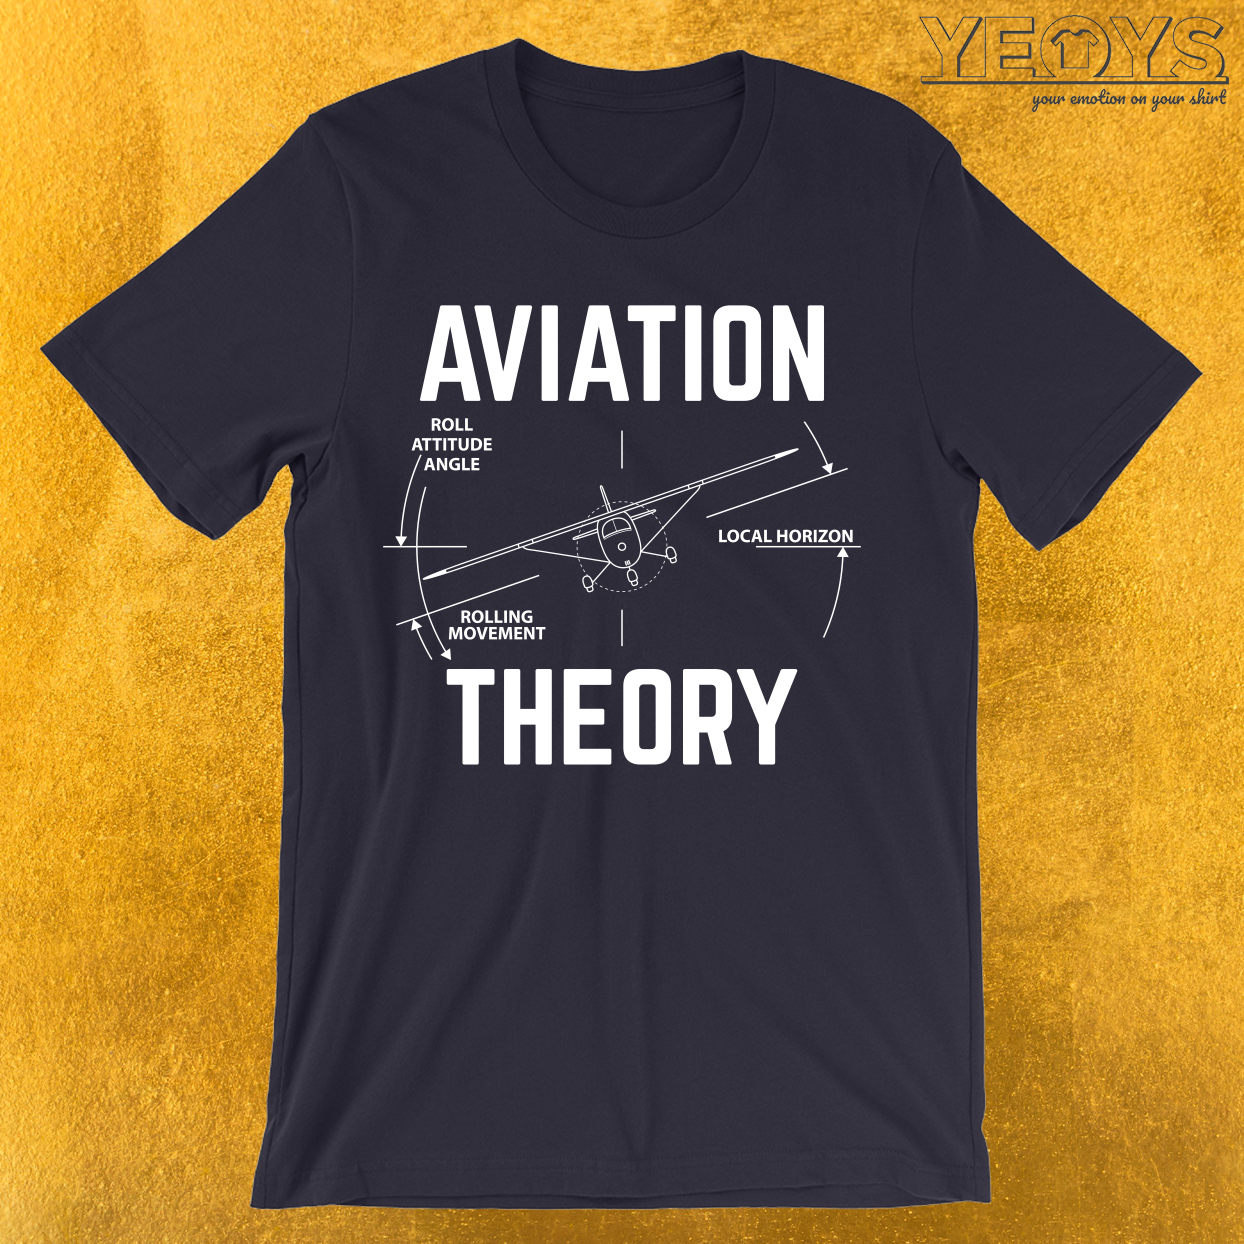 Aviation Theory T-Shirt